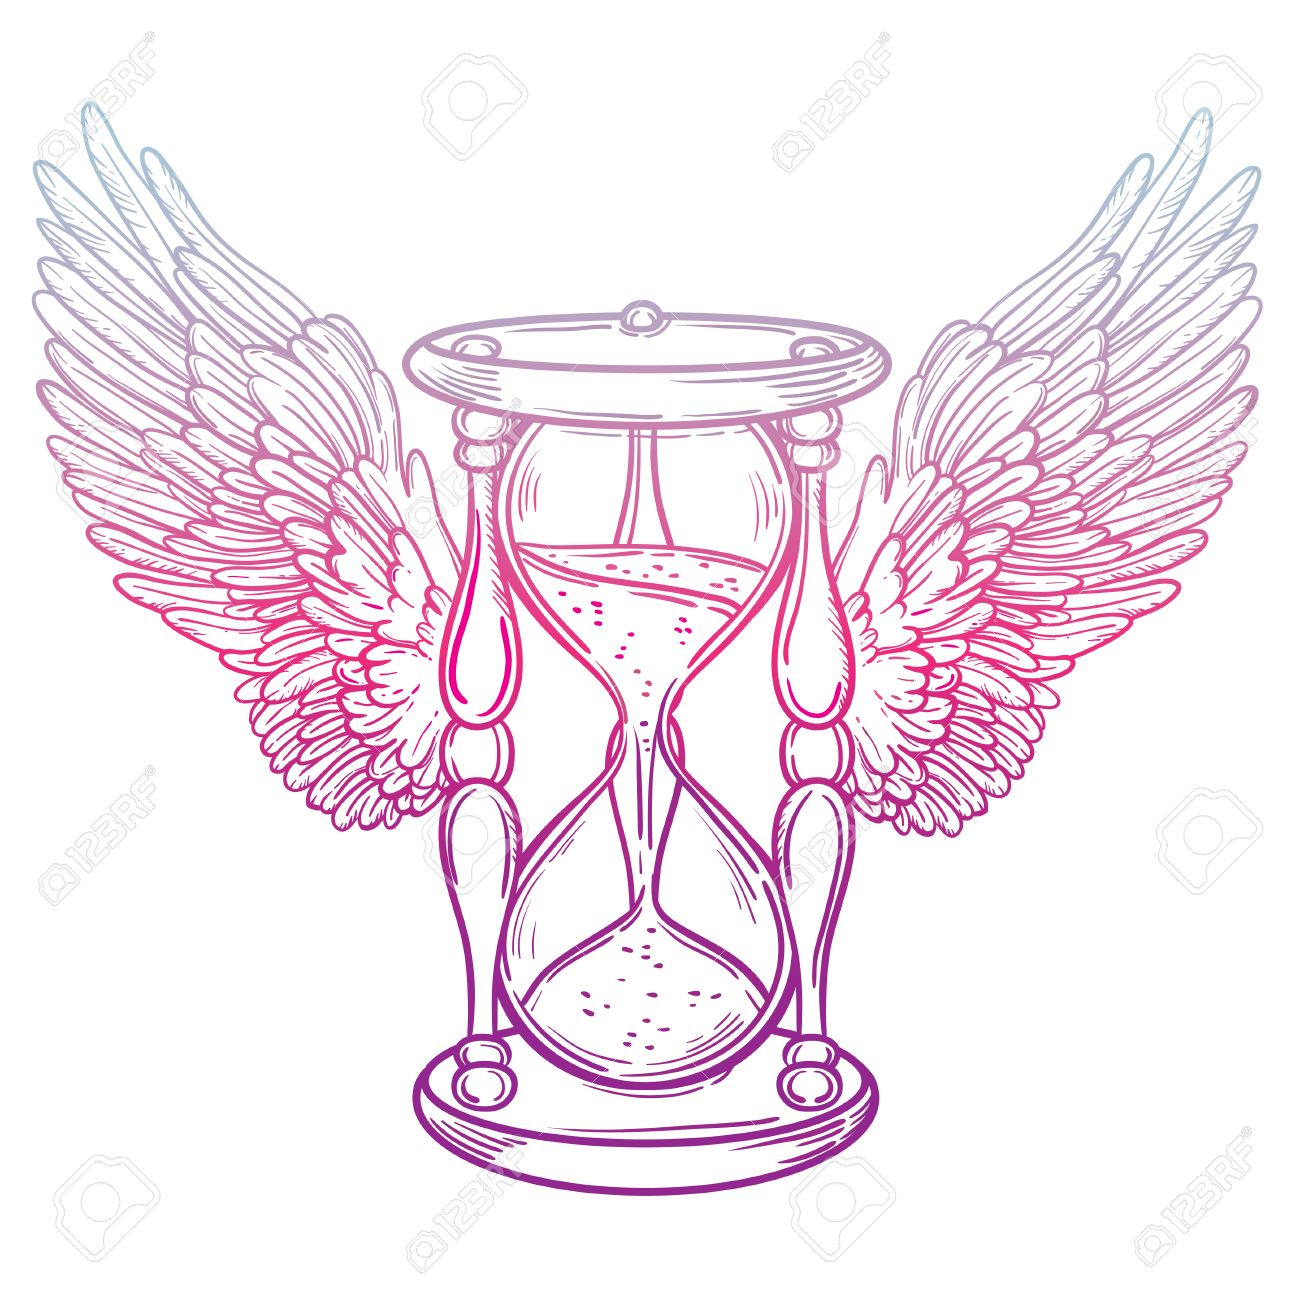 Coloring Book For Kids And Adults Decorative Antique Hourglass Illustration With Wings Hand Drawn Vector Tarot Card Sketch Dotwork